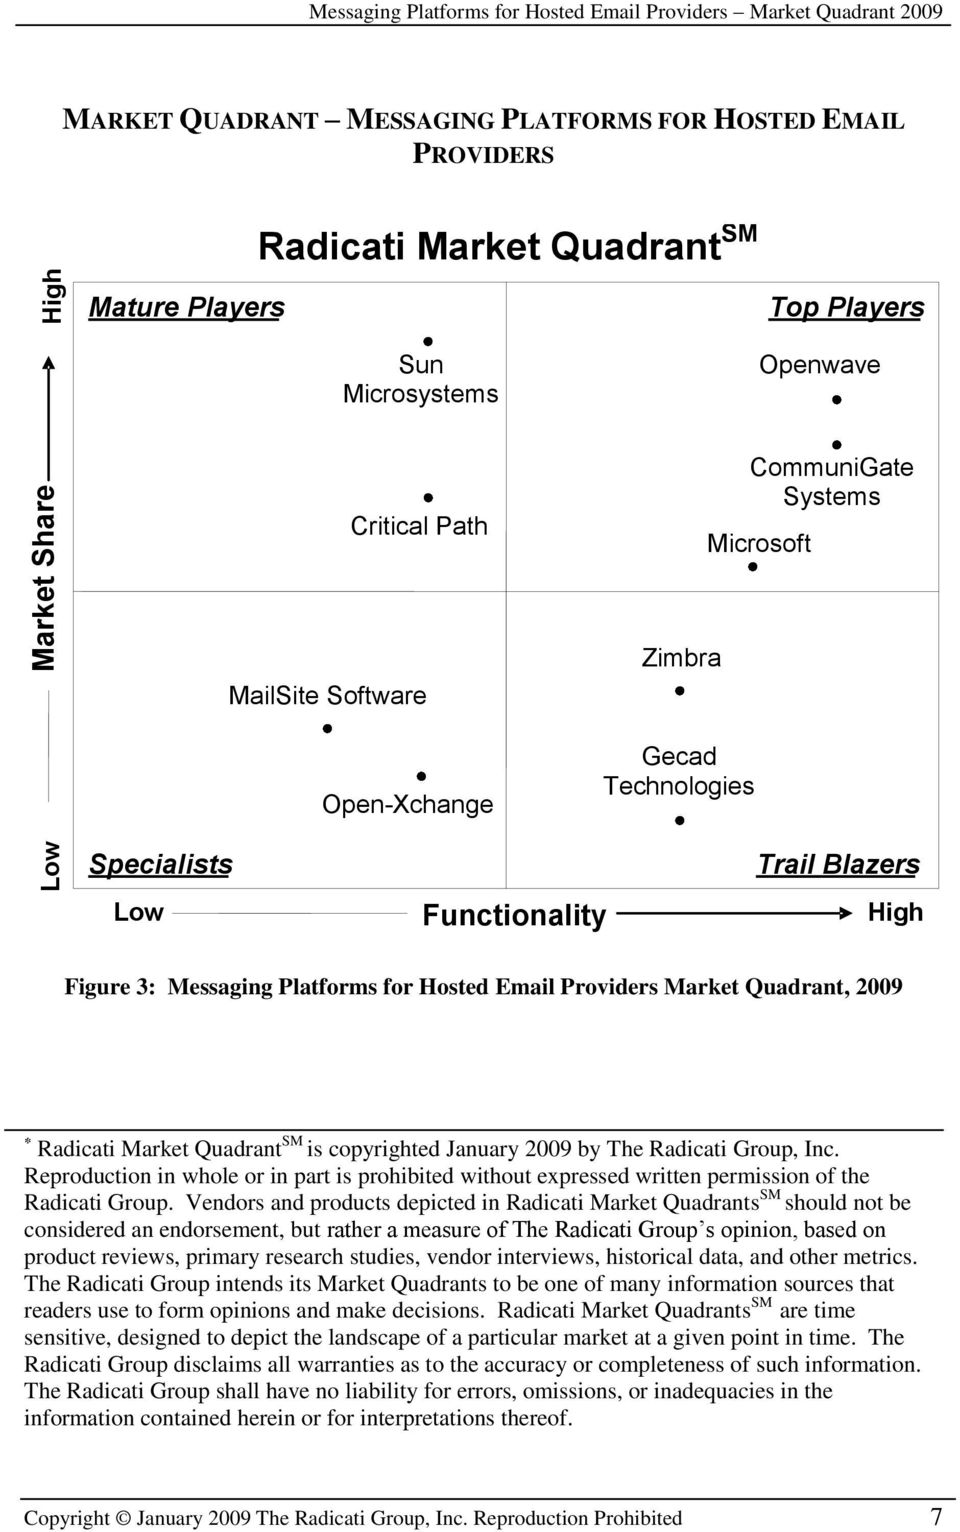 Messaging Platforms for Hosted Email Providers Market Quadrant, 2009 Radicati Market Quadrant SM is copyrighted January 2009 by The Radicati Group, Inc.